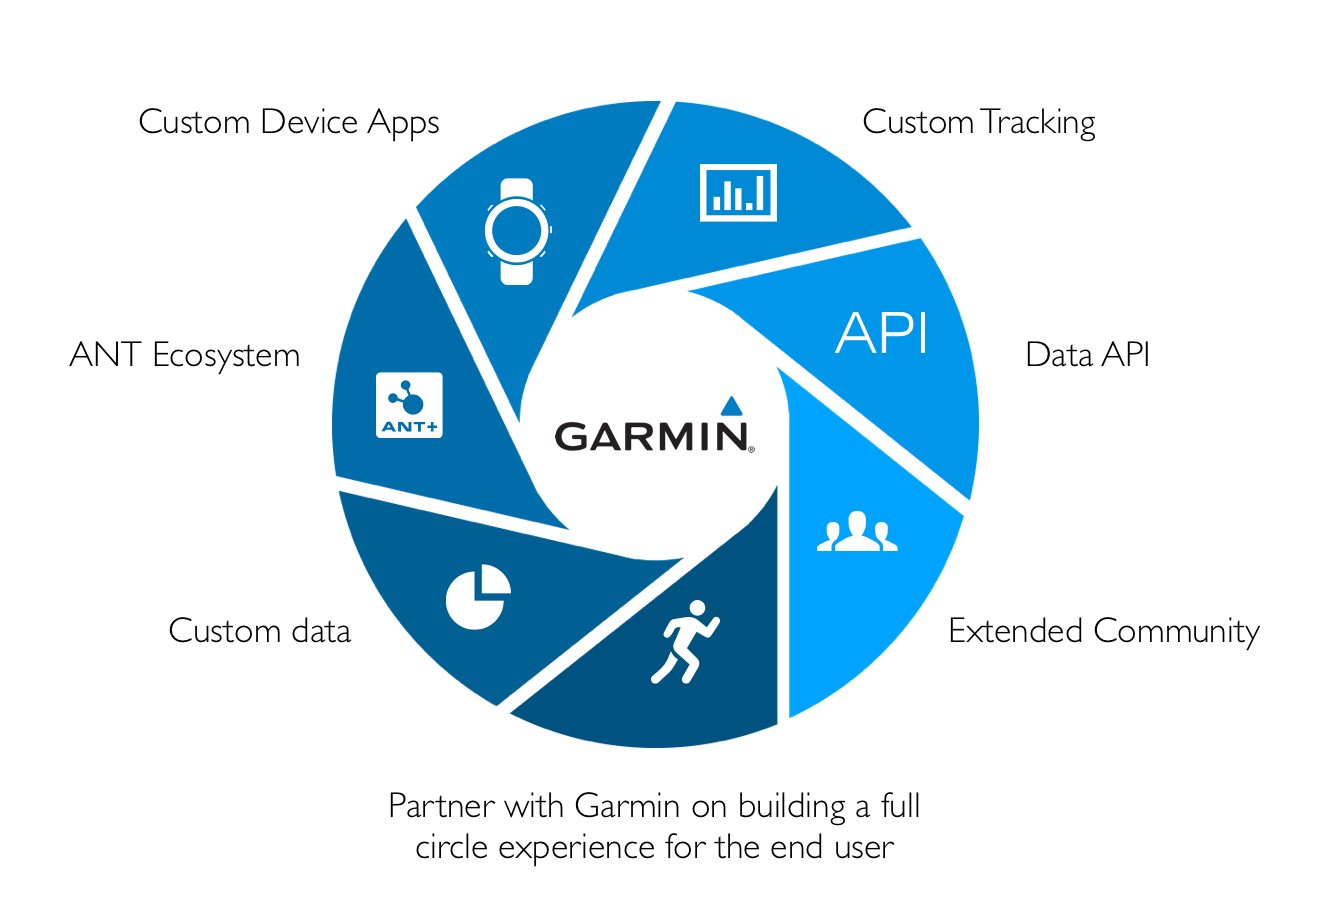 How Garmin Offers Developers Nearly Limitless Possibilities for